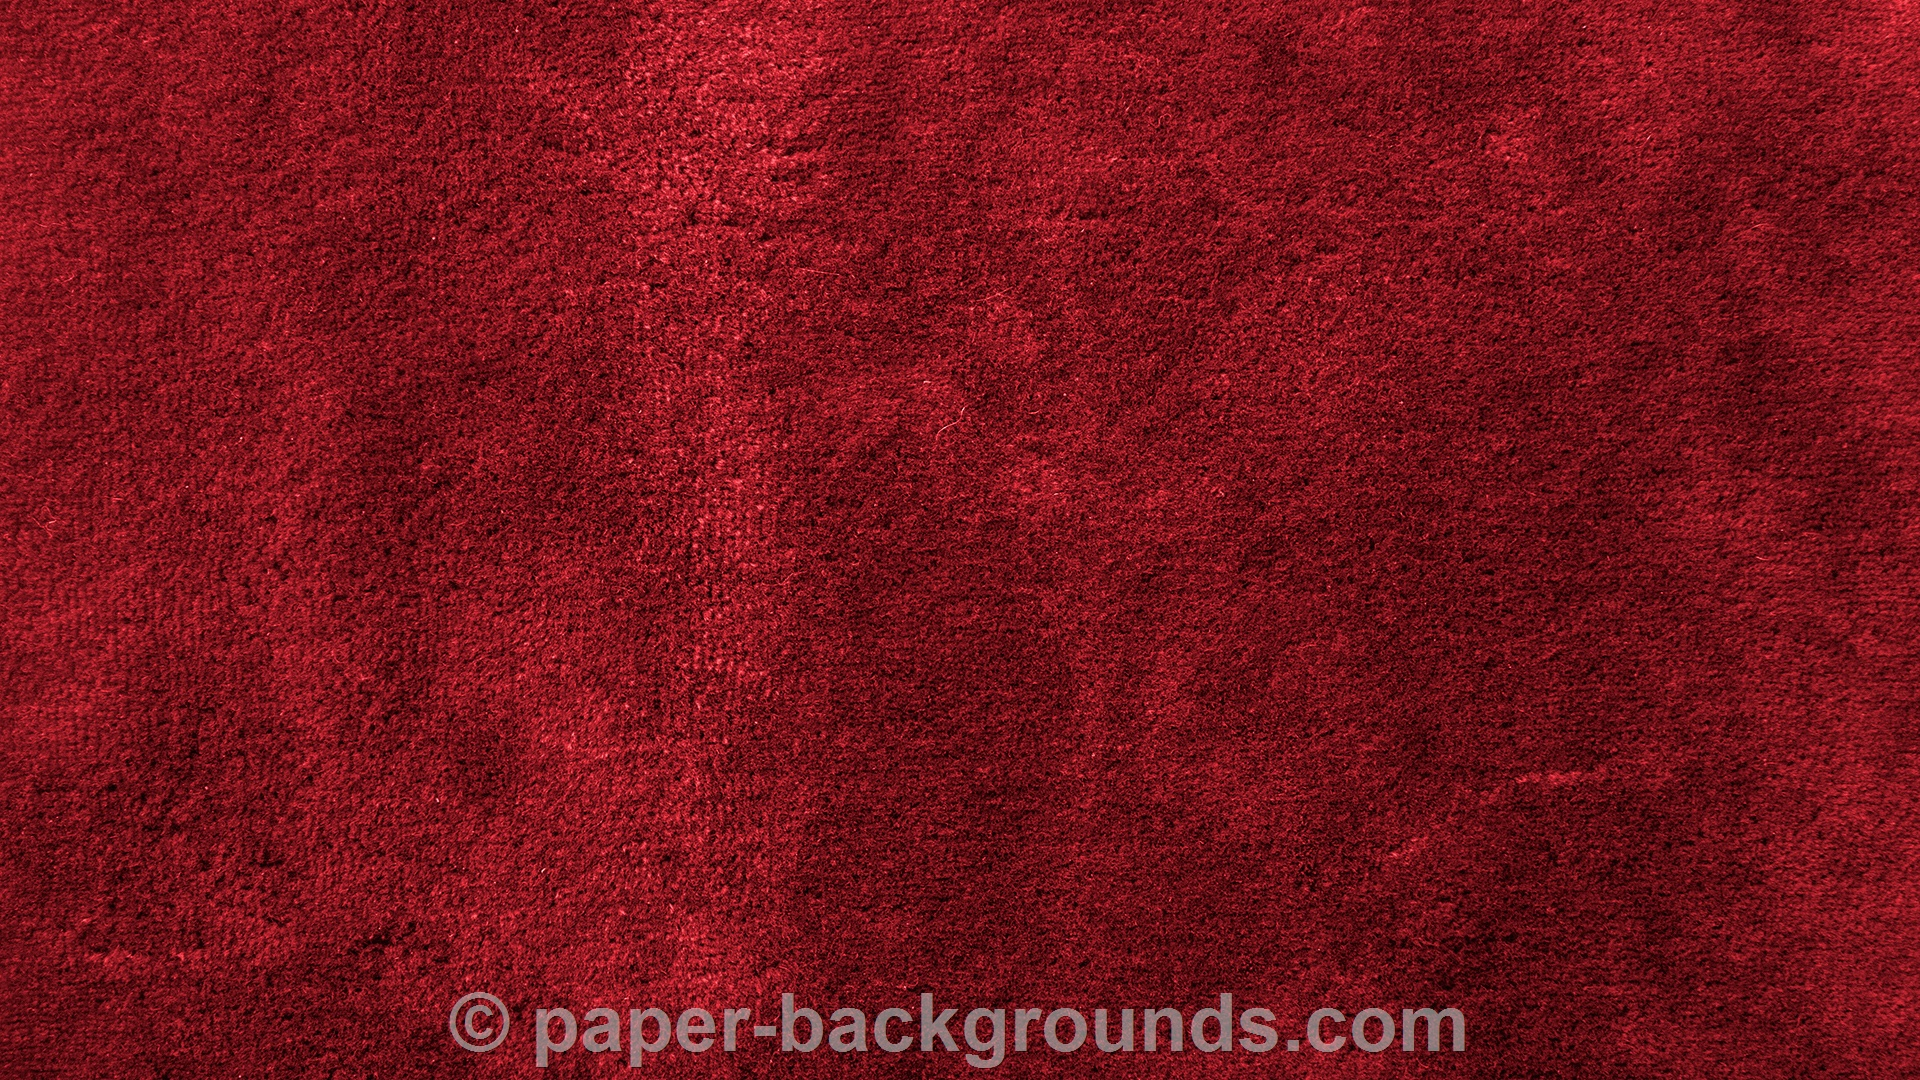 red textured background hd - photo #11